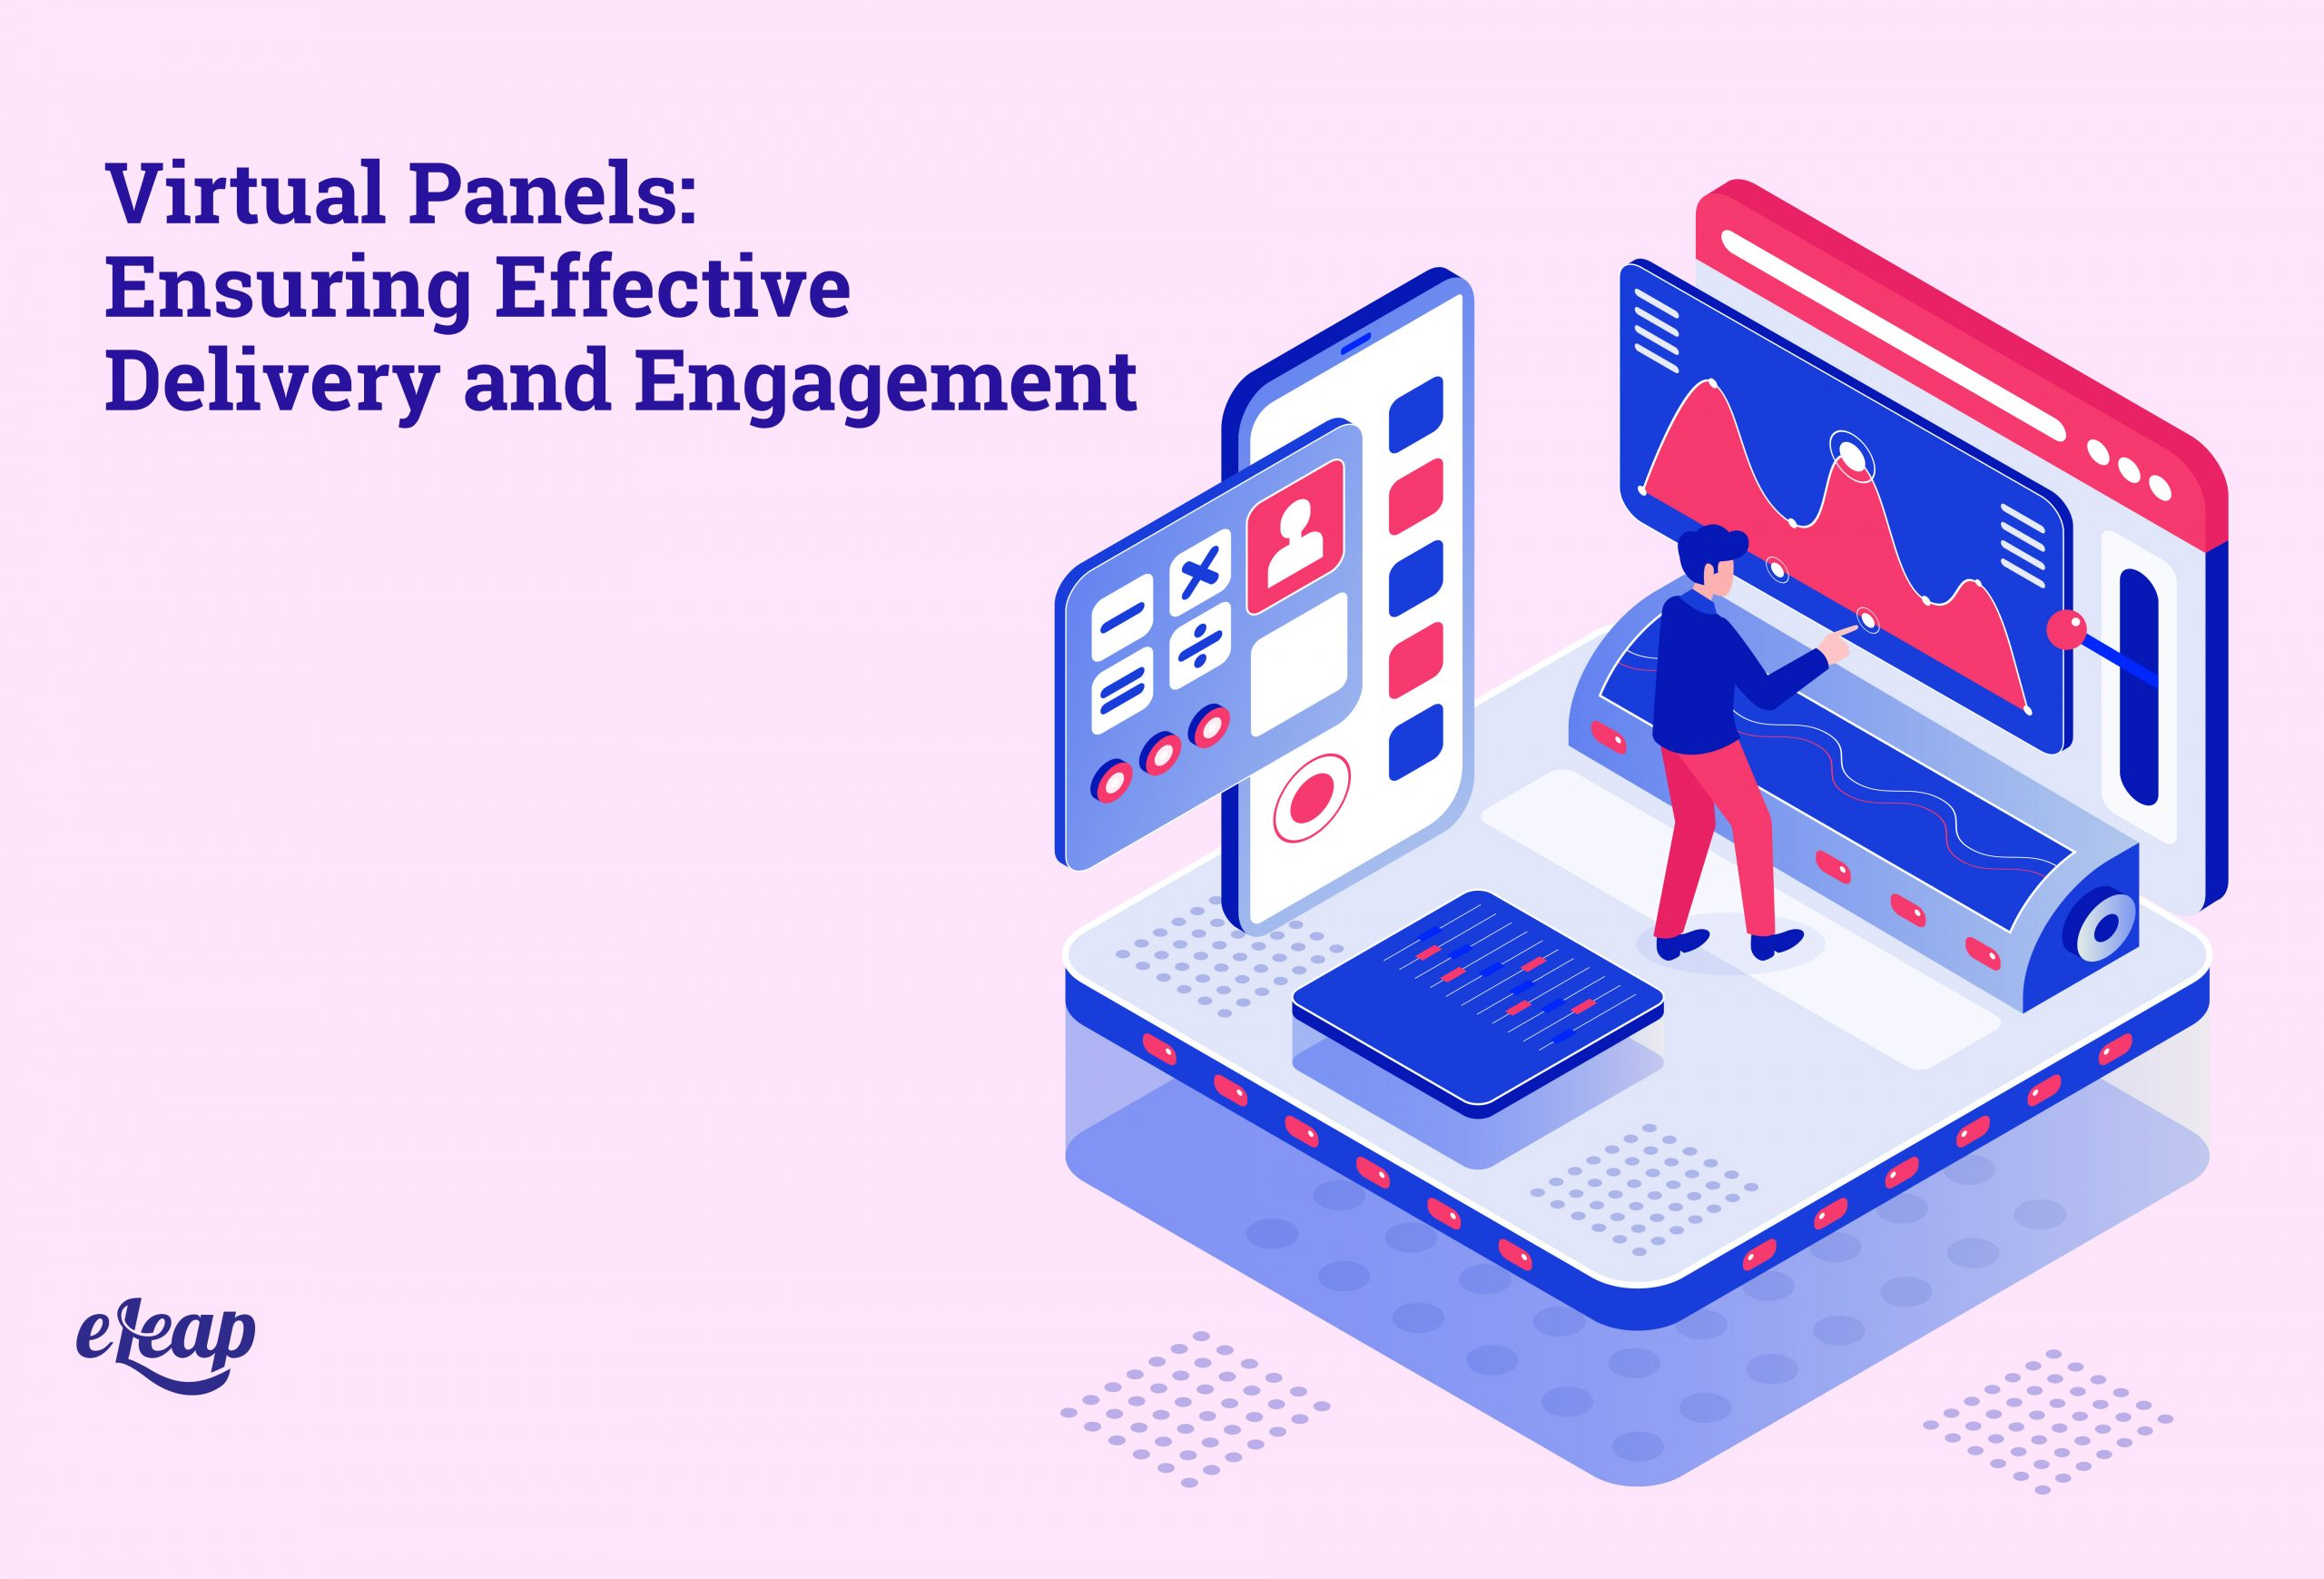 Virtual Panels: Ensuring Effective Delivery and Engagement